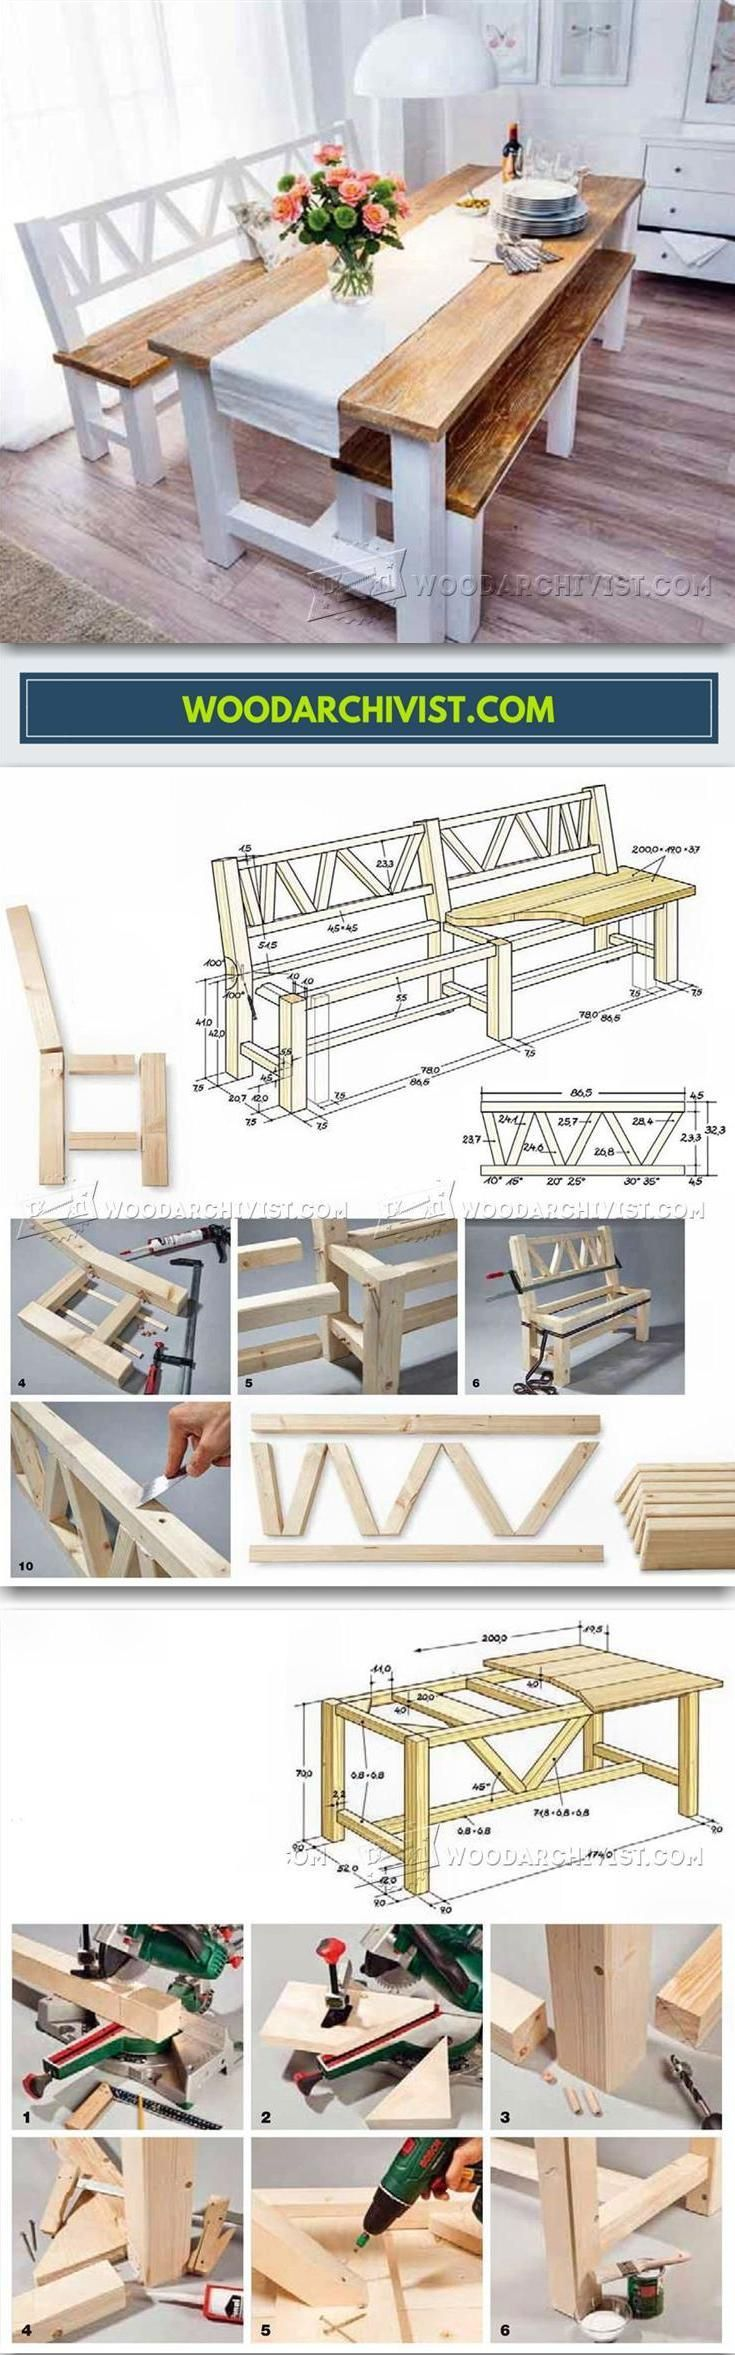 Dining Set With Bench Plans - Furniture Plans and Projects | WoodArchivist.com